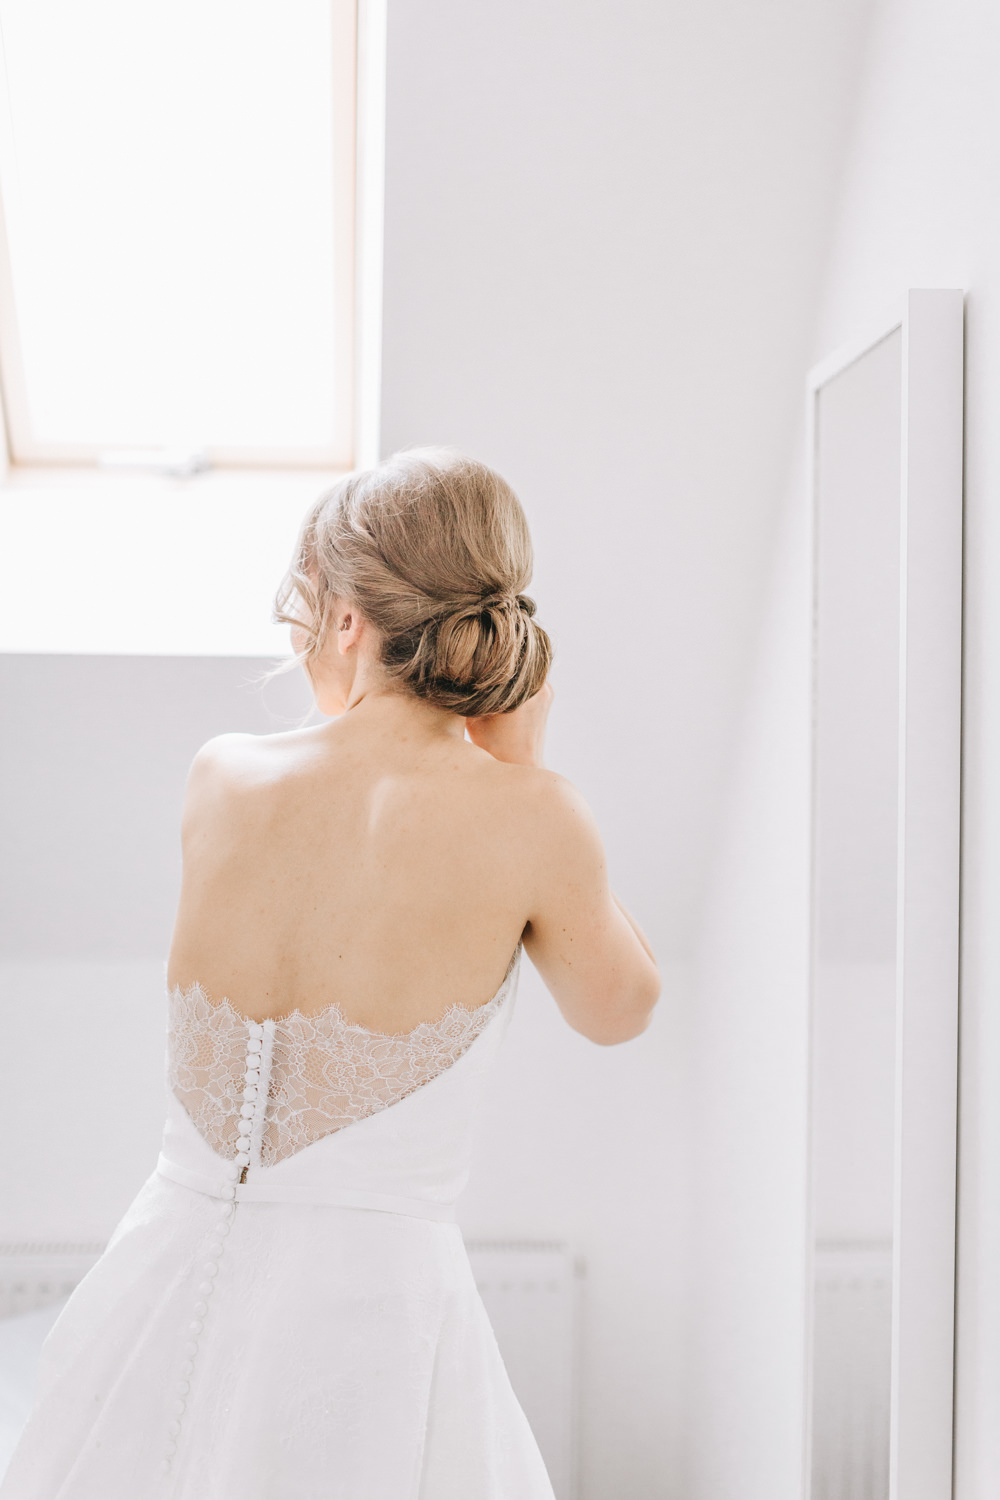 Bride Bridal Dress Gown Lace Strapless A Line Skirt Button Back Healey Barn Wedding Amy Lou Photography